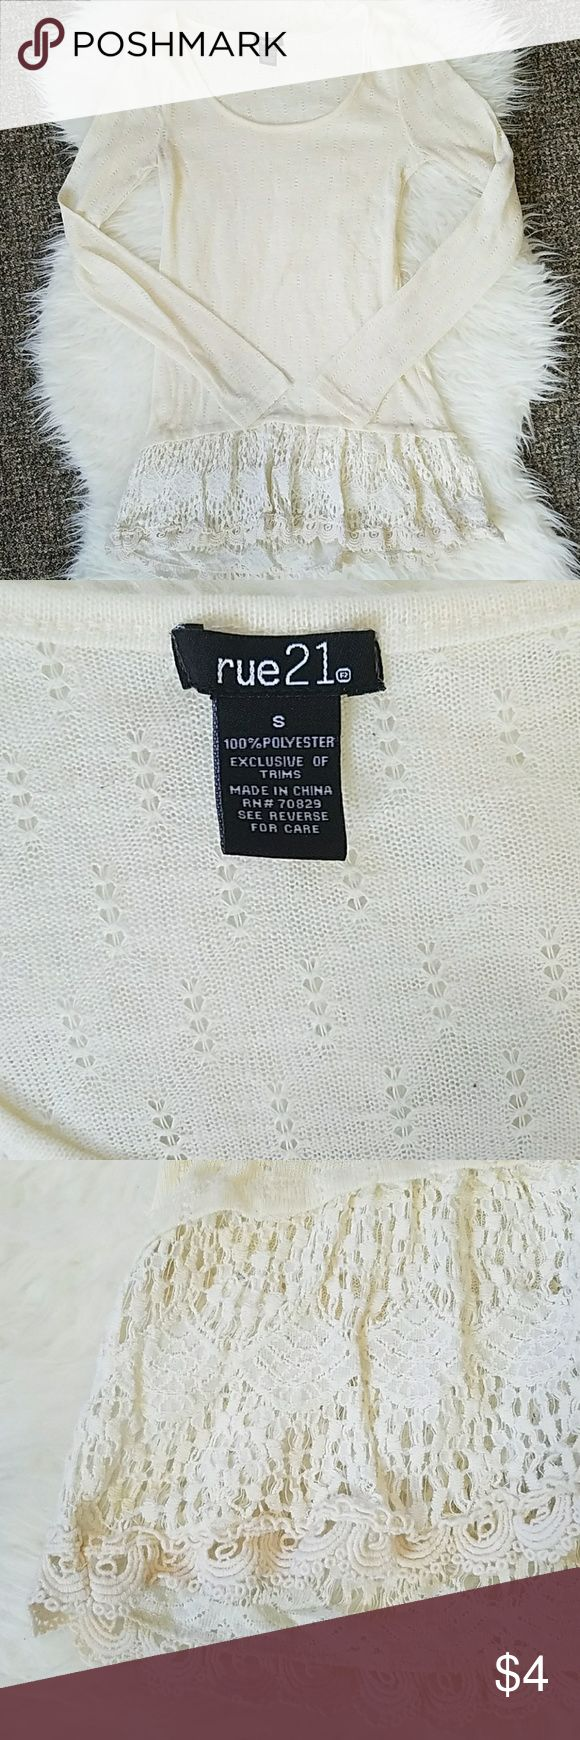 """LOWEST PRICE Rue 21 Women's Cream Top Lace Small Rue 21 Women's Shirt Sz Small Cream Lace. Pilled (pictured). Run in armpit.  Bust: 28"""" Length: 27"""" Underarm sleeve length: 19""""  See my page for more!  Pet/smoke free home. Rue 21 Tops Blouses"""